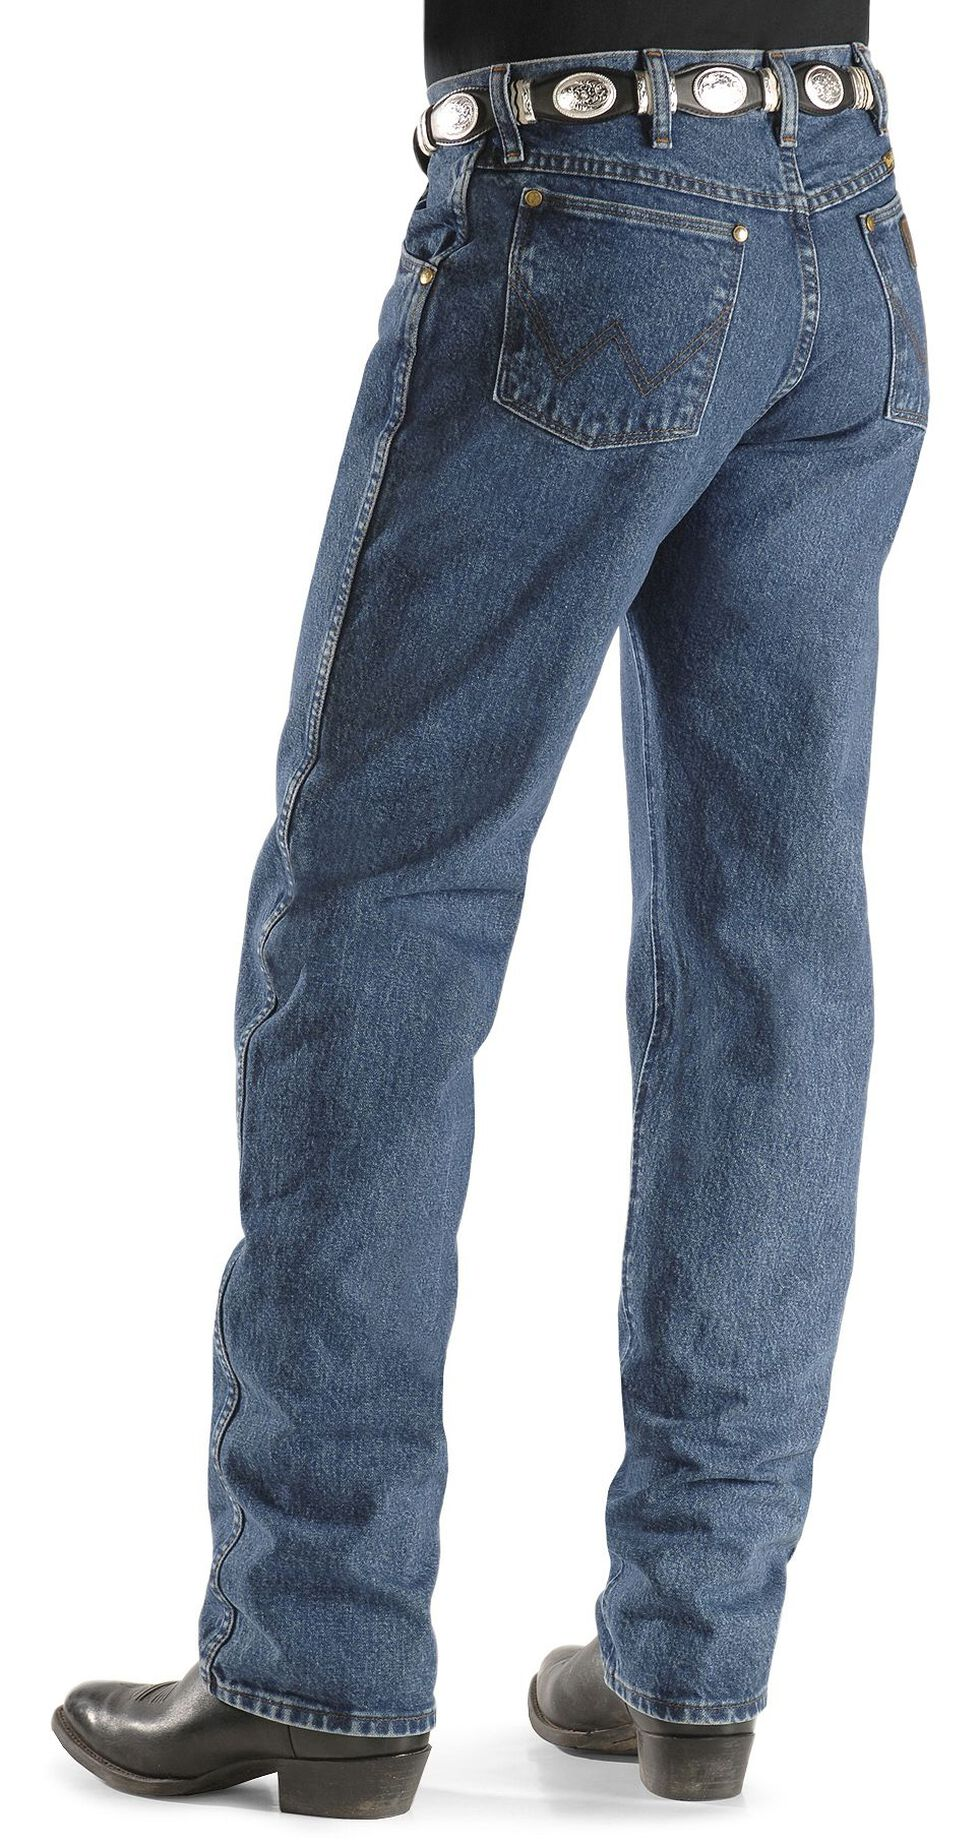 Wrangler 47MWZ Premium Performance Cowboy Cut Regular Fit Prewashed Jeans, Dark Stone, hi-res